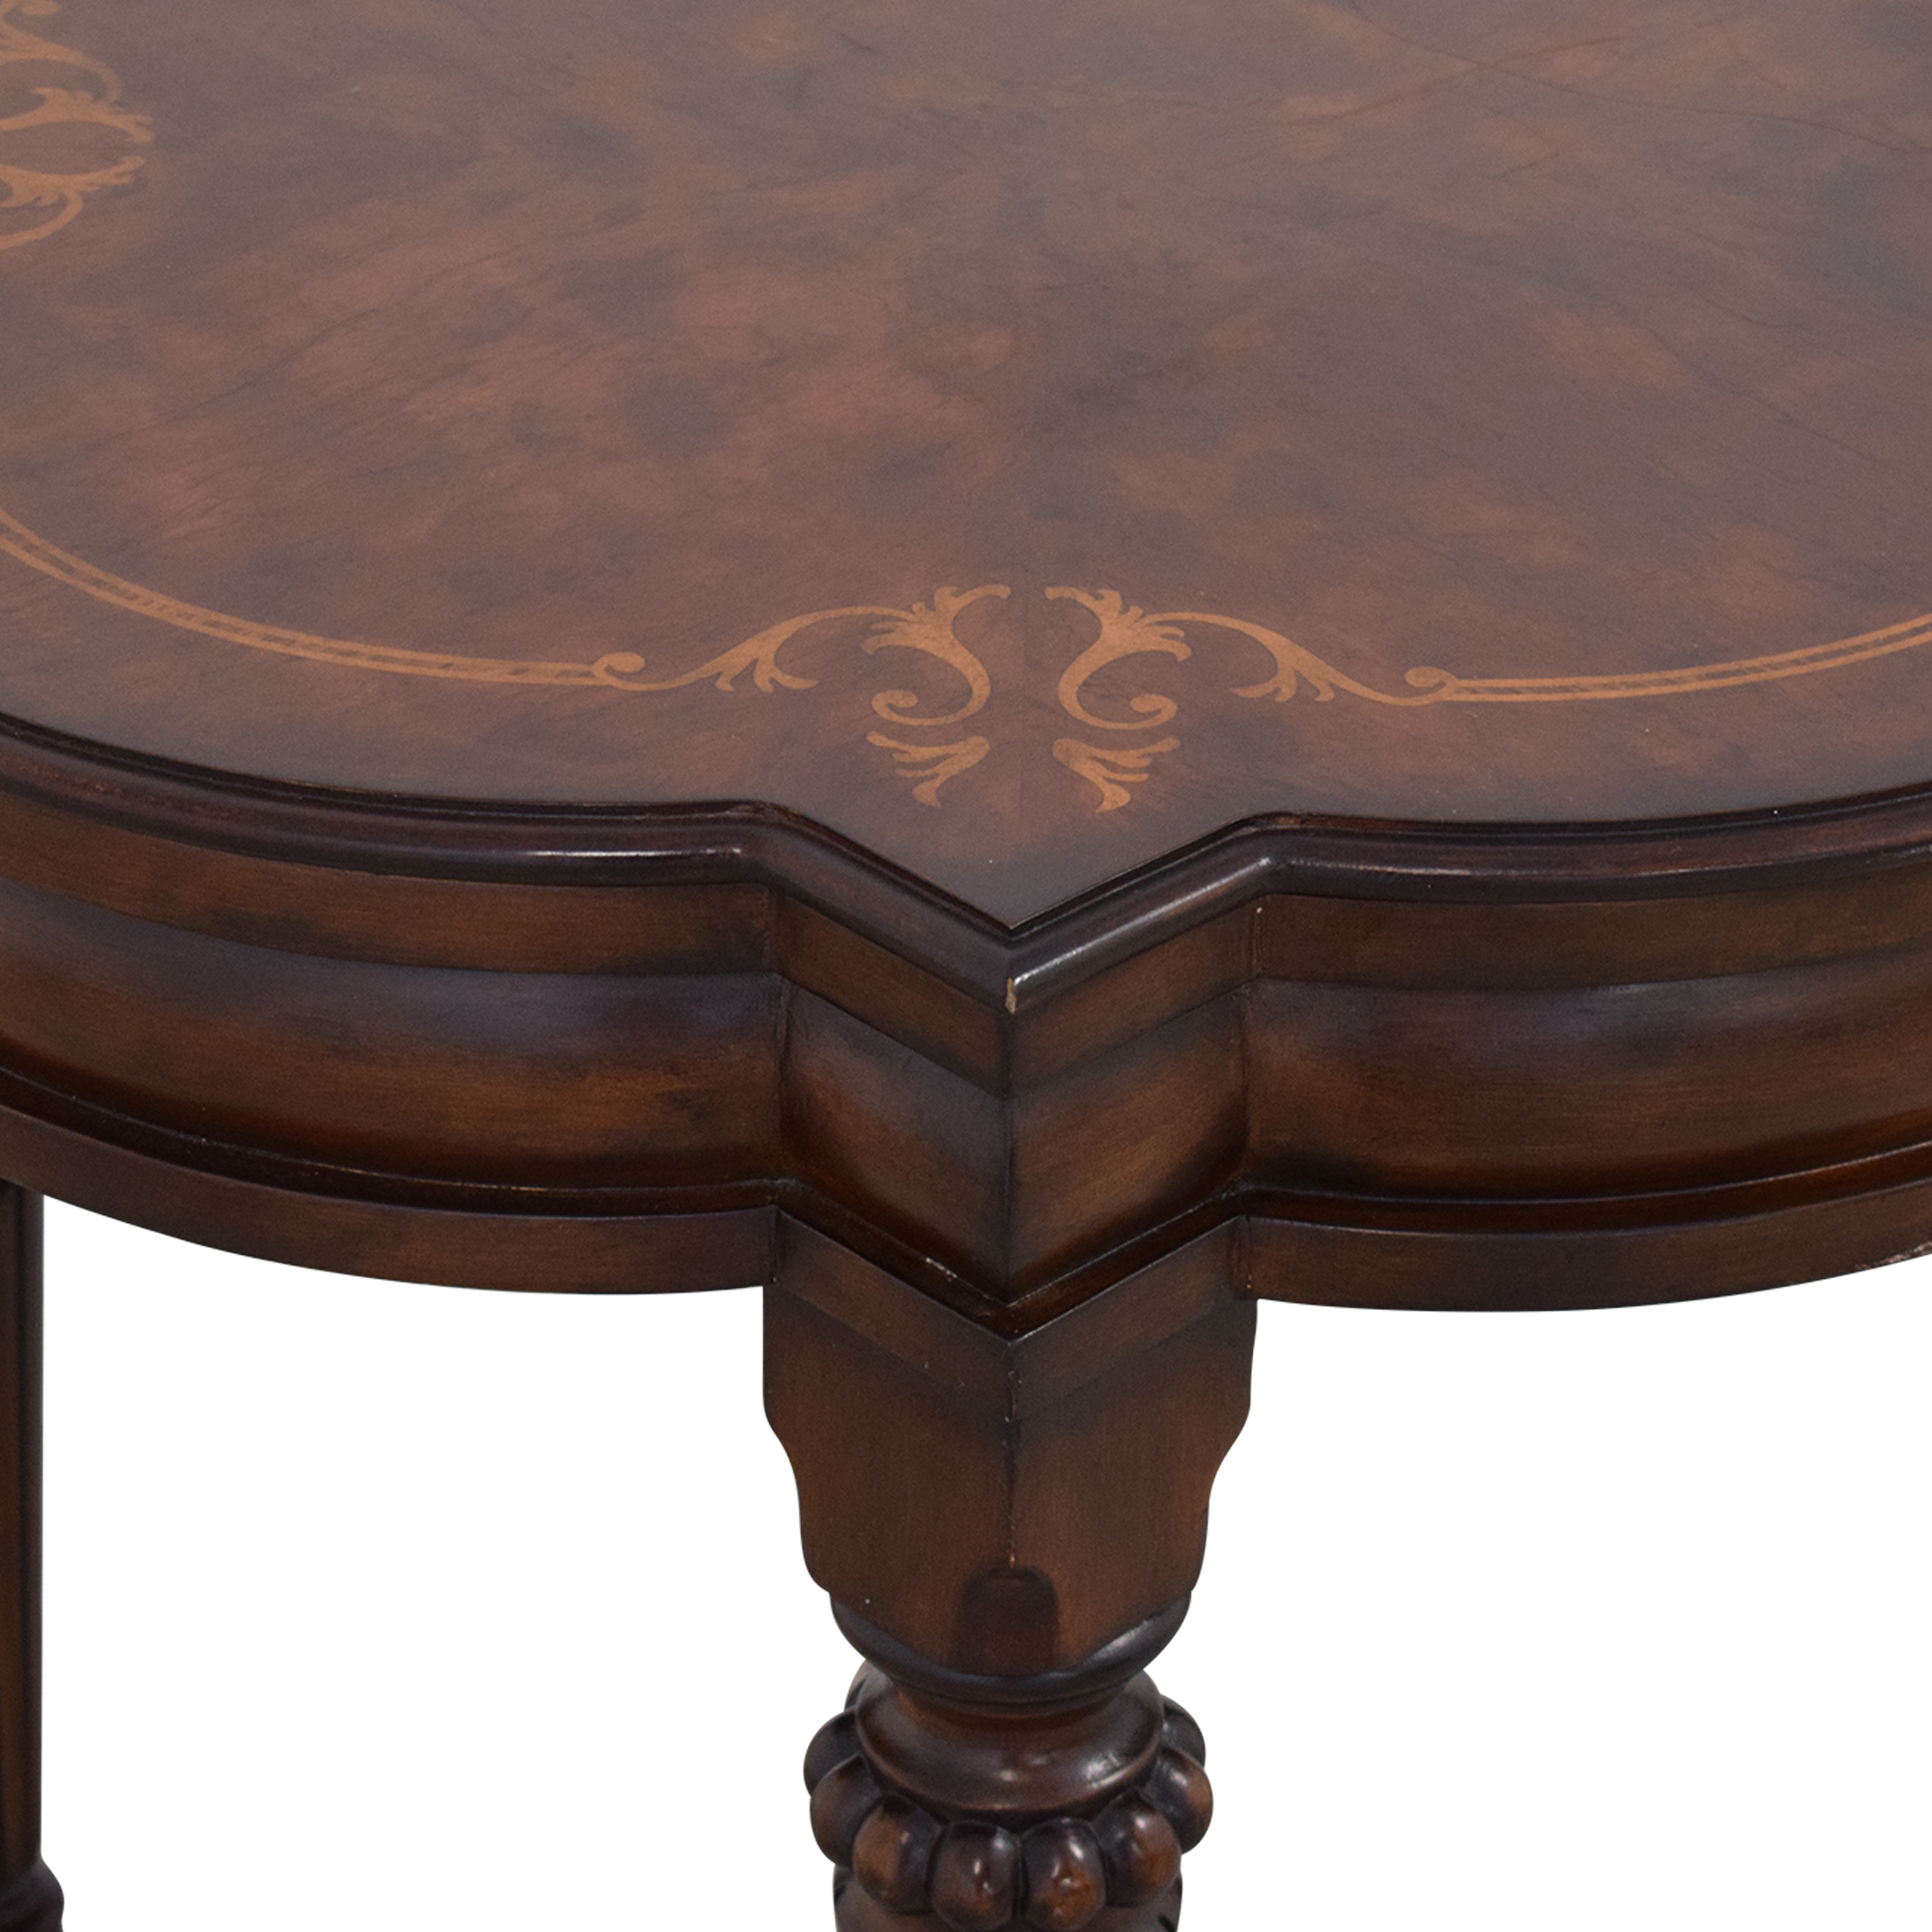 Ethan Allen Ethan Allen Marquetry Inlaid End Table dimensions